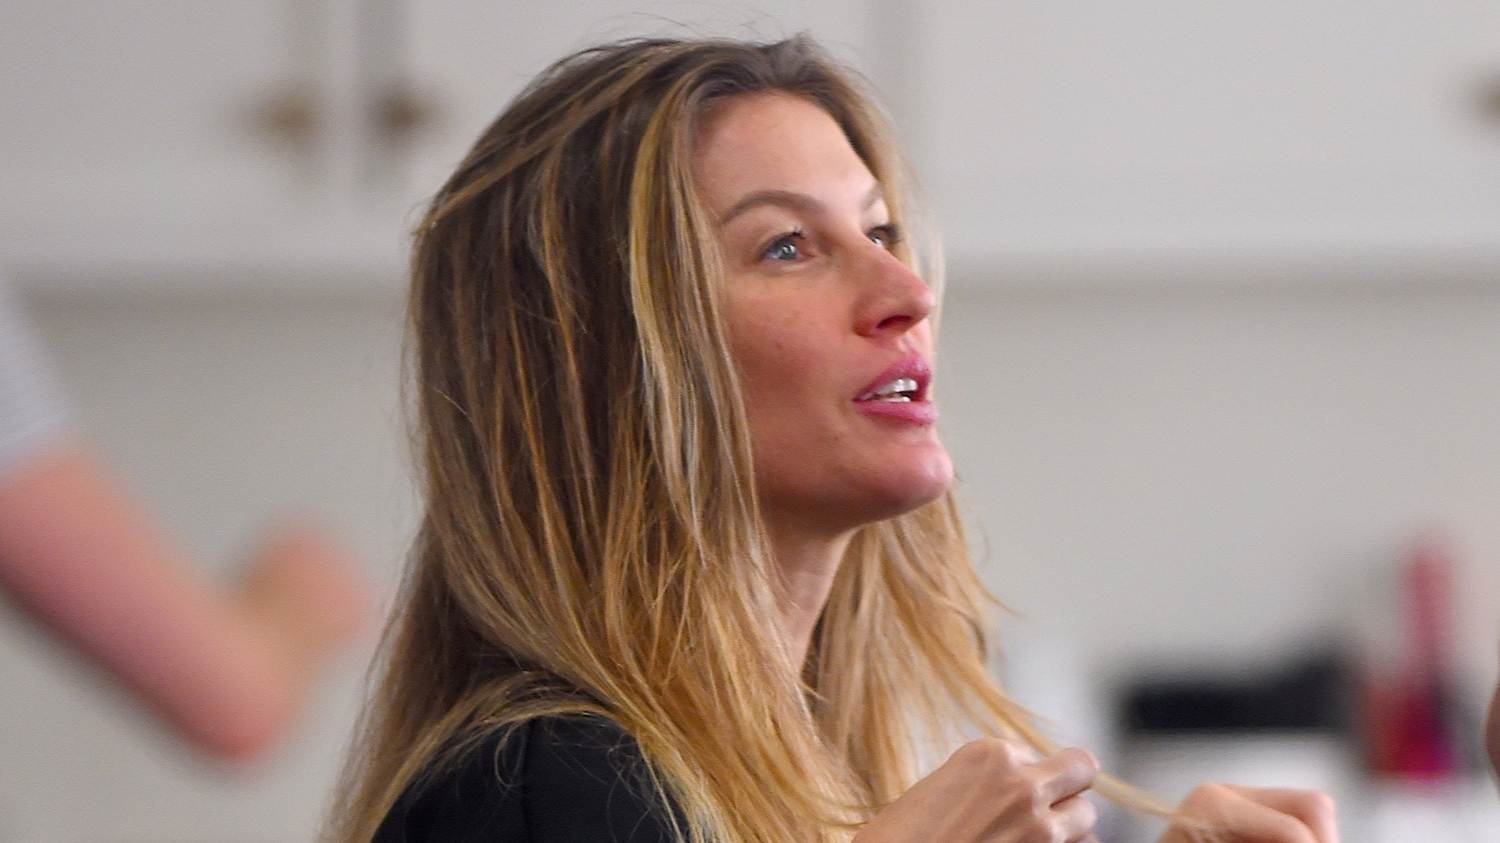 Gisele Bundchen Gets Her Hair Highlighted by Pal Hairstylist Harry Josh! - Just Jared